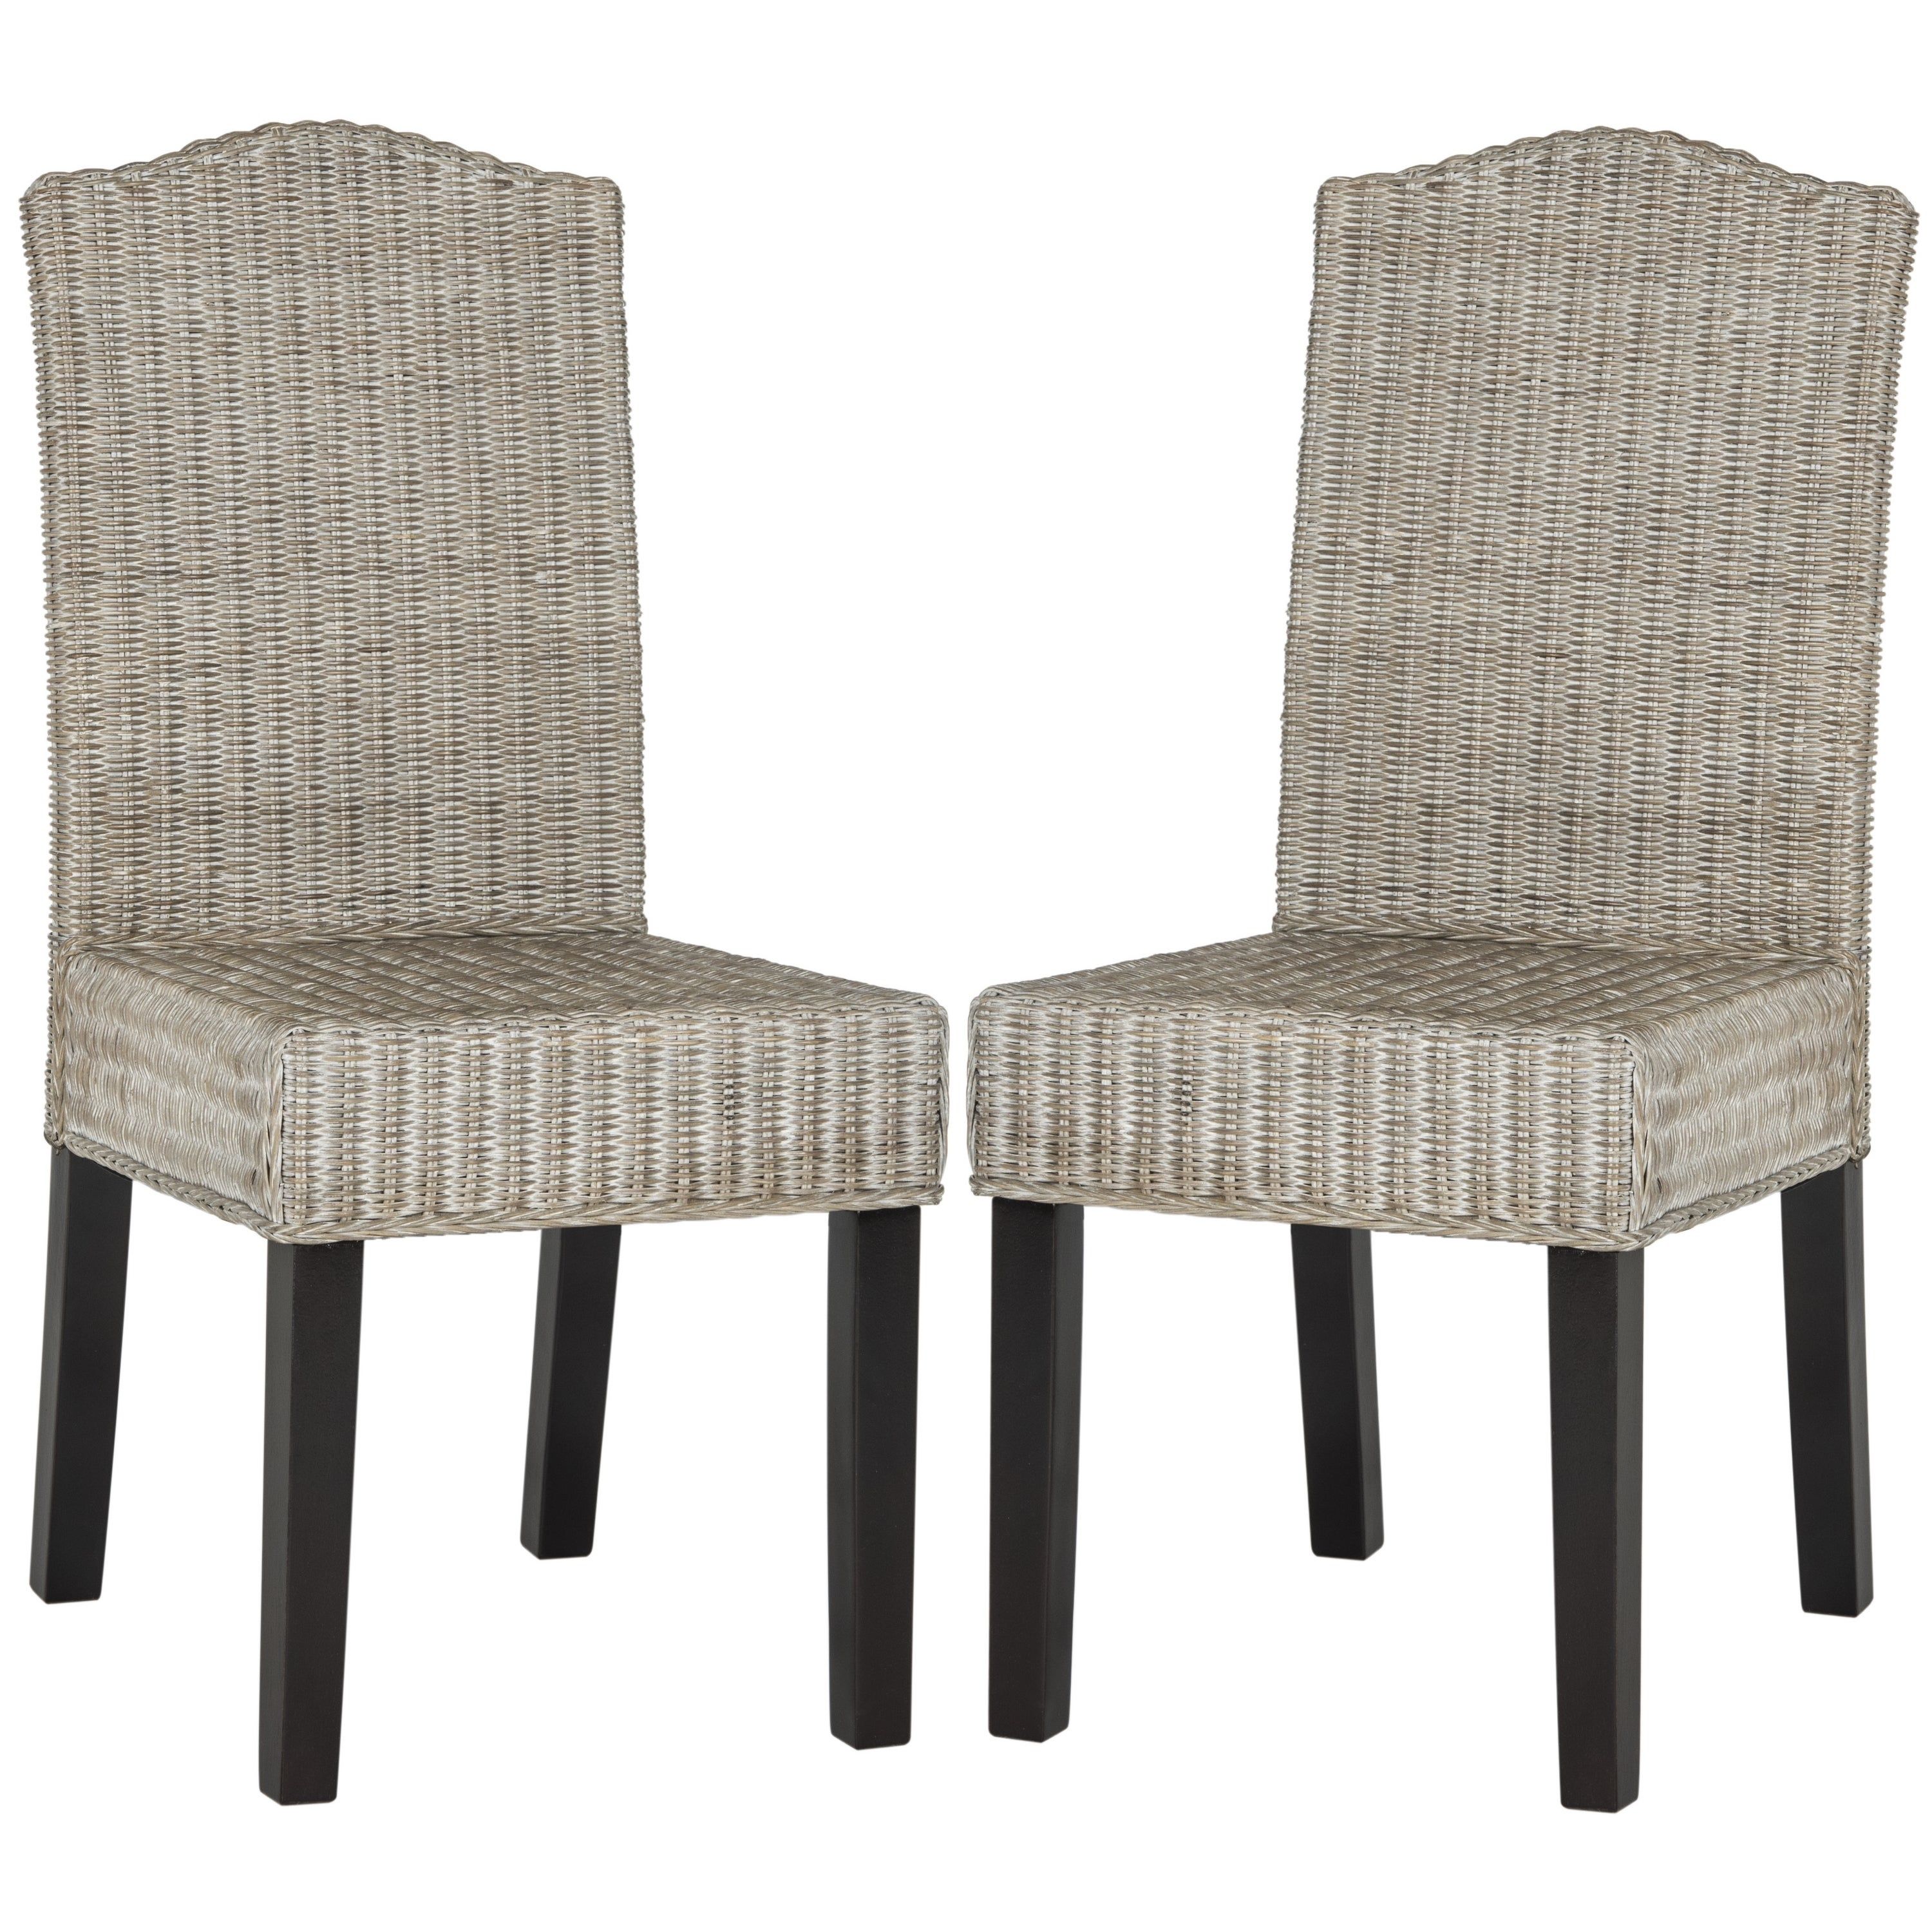 Safavieh Rural Woven Dining Odette Antique Grey Wicker Dining Chairs (Set of 2)  sc 1 st  Overstock.com & Buy Rattan Kitchen u0026 Dining Room Chairs Online at Overstock.com ...